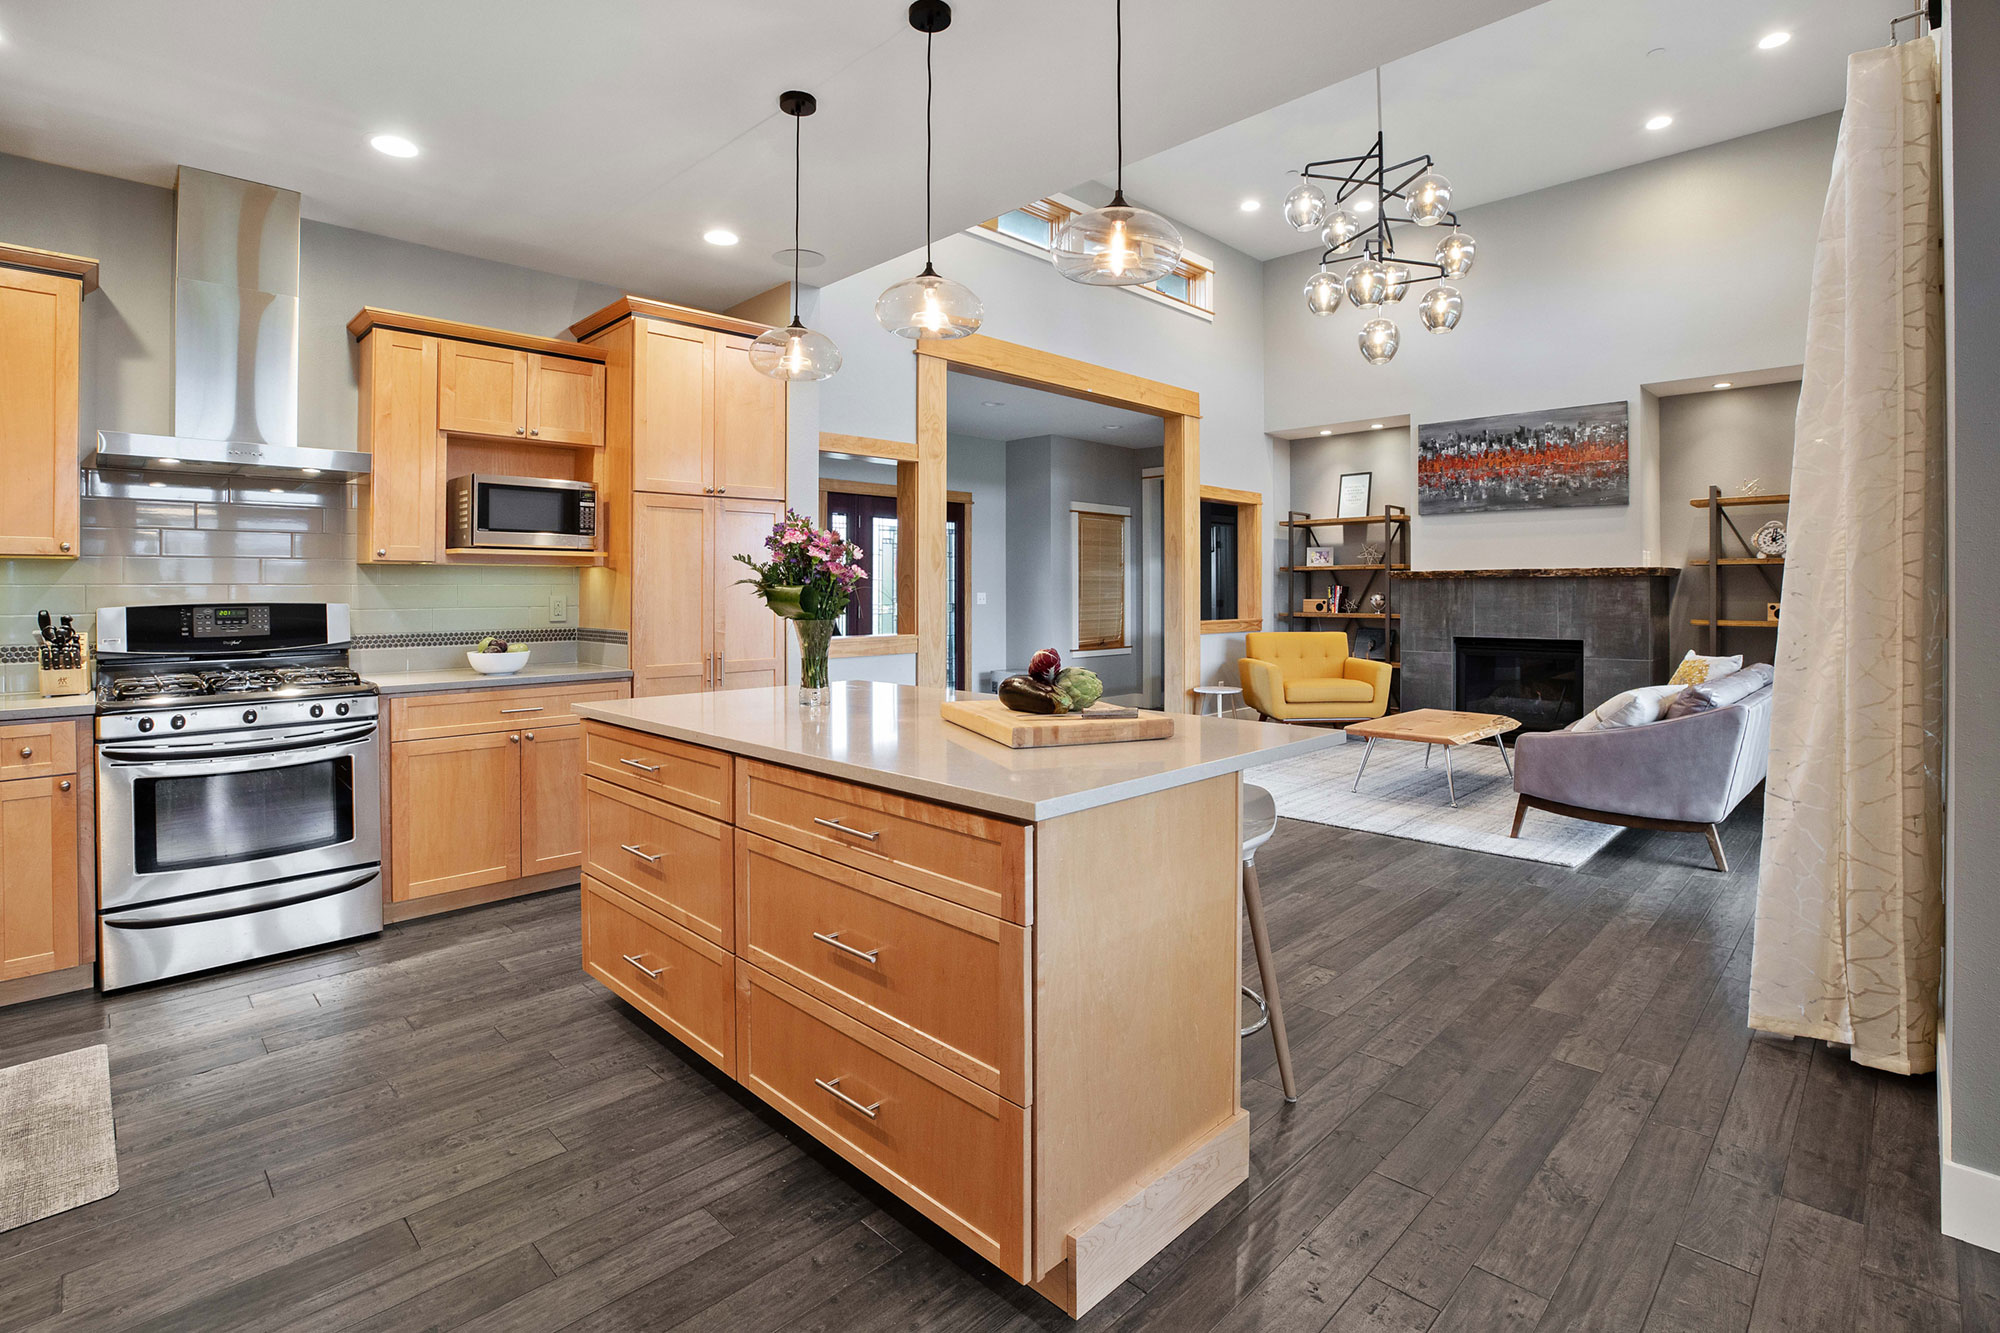 design style mid century modern open concept kitchen to living